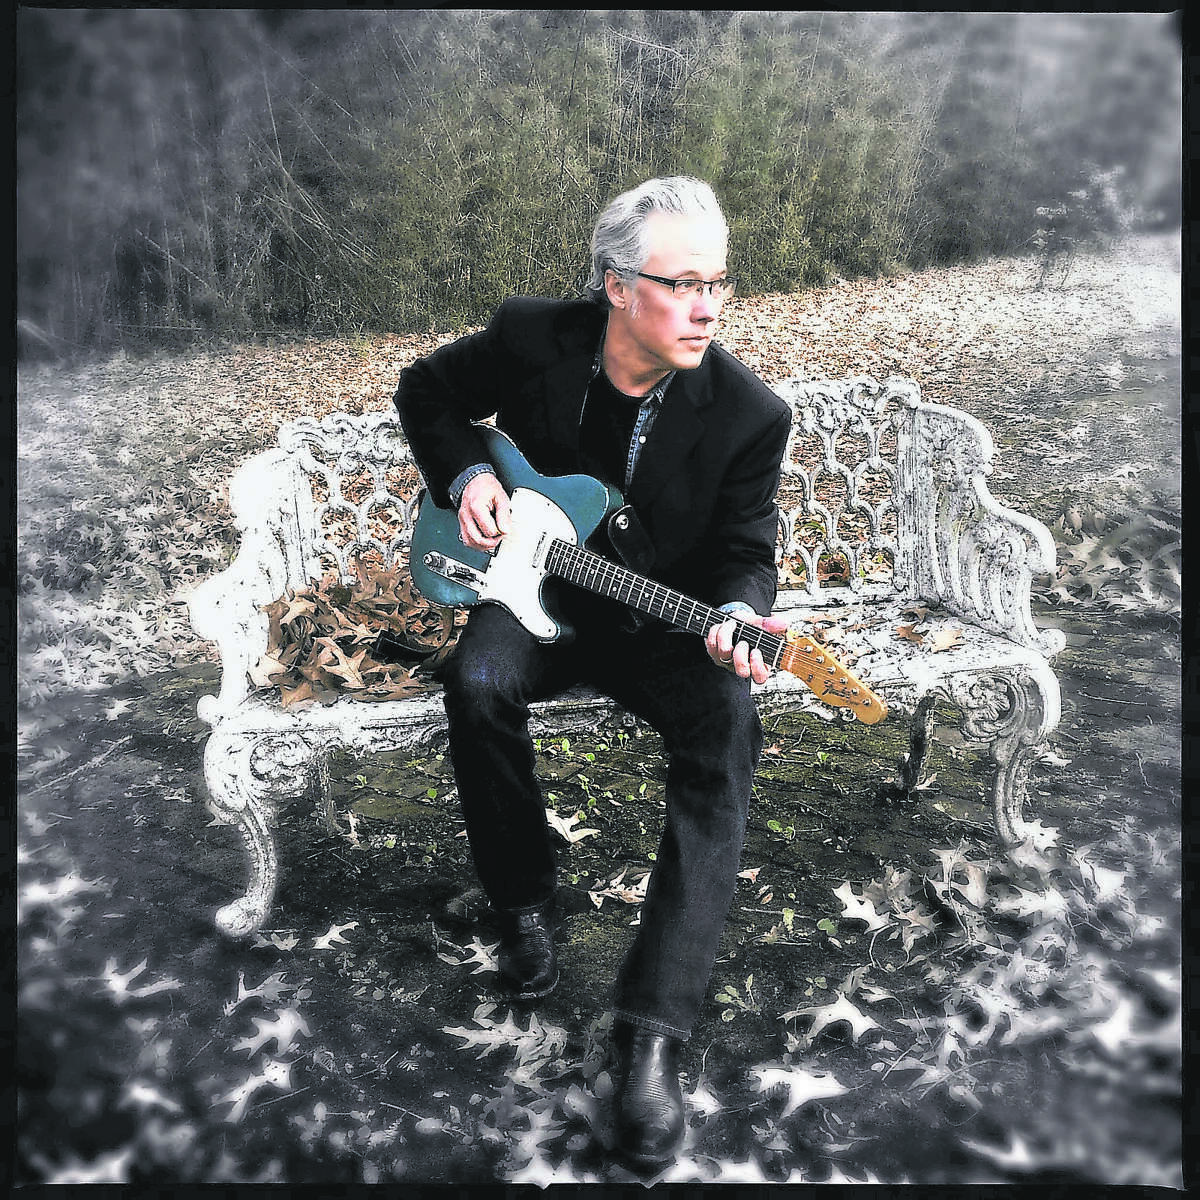 Radney Foster will play at the Alvin Live Summer Concert series on July 9 at the K-219 studio.